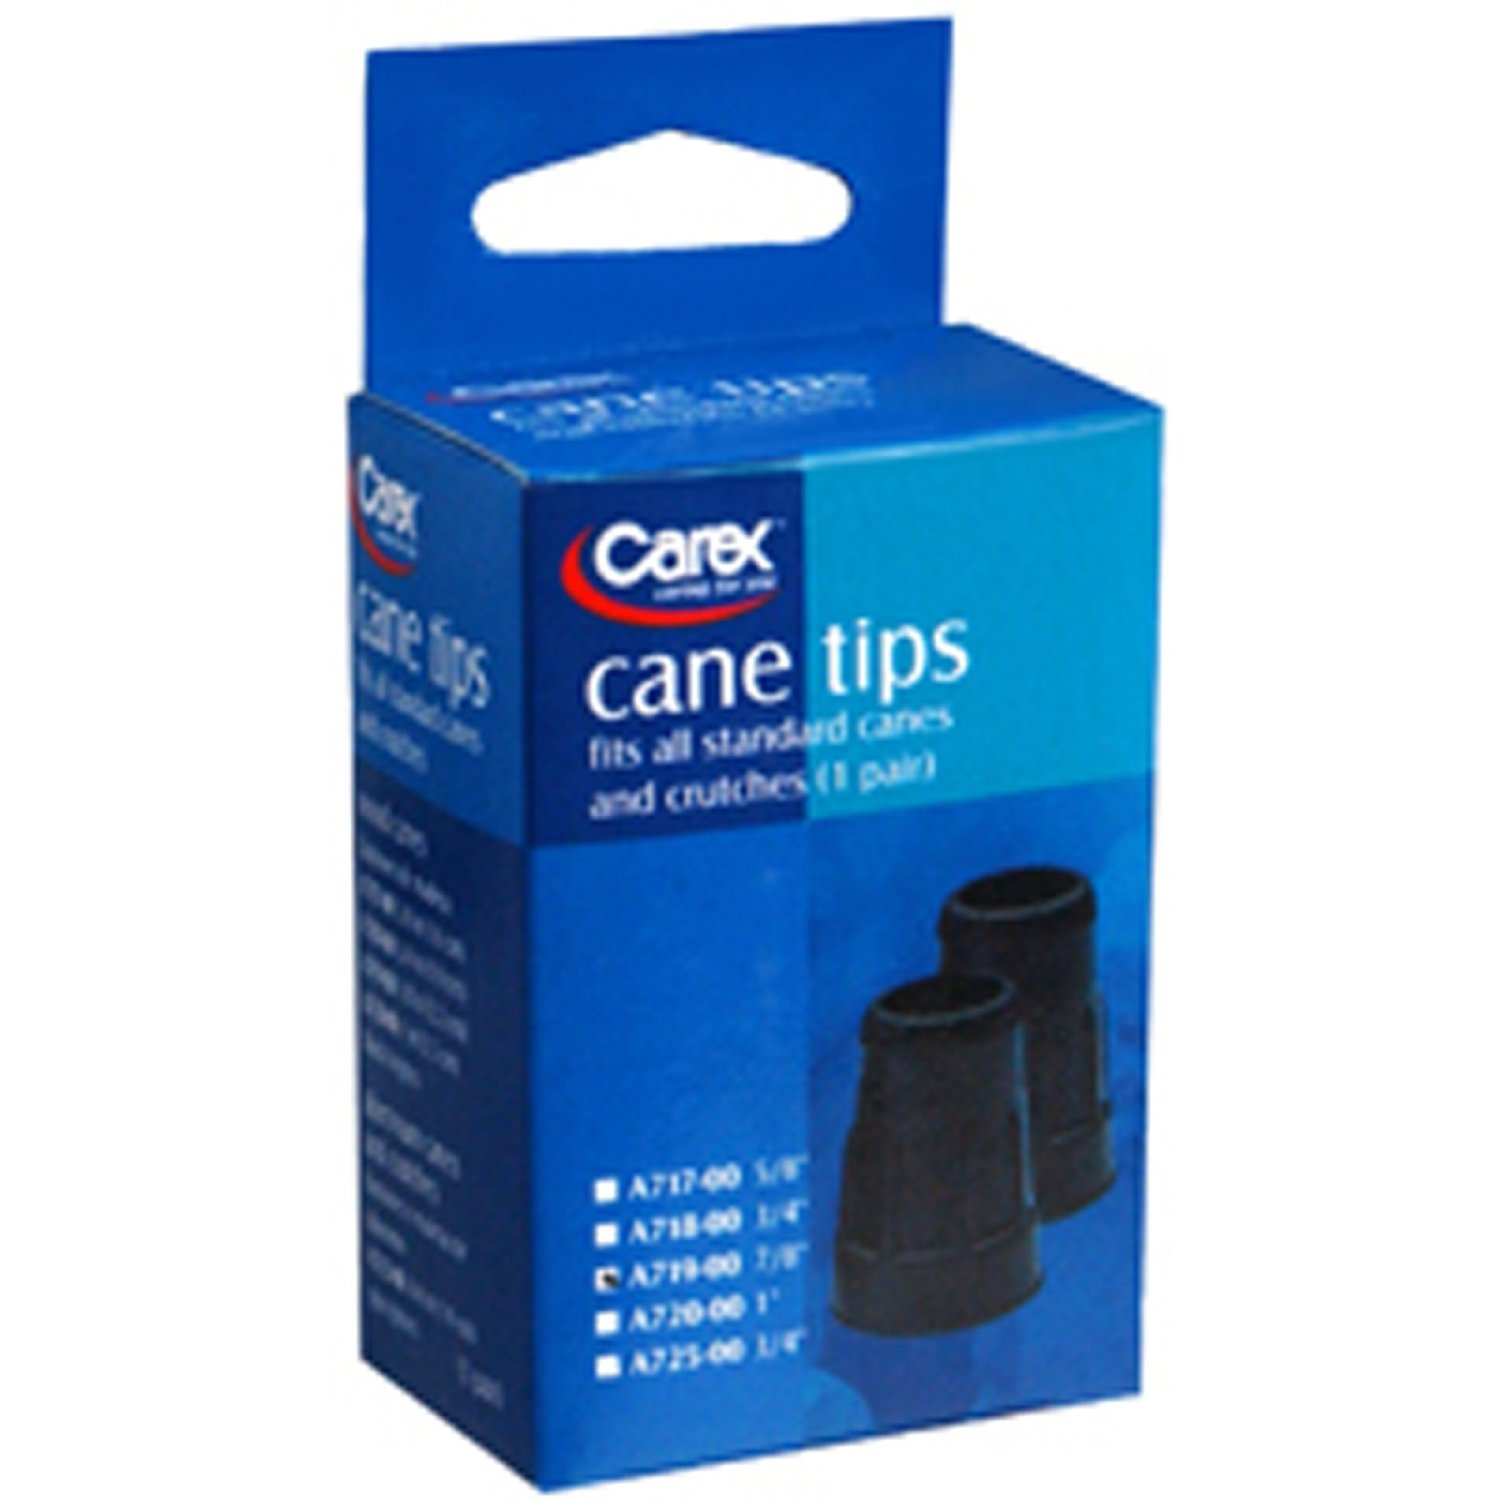 Carex Cane Tips 7/8 inch, Black #A719-00 - 4 pairs